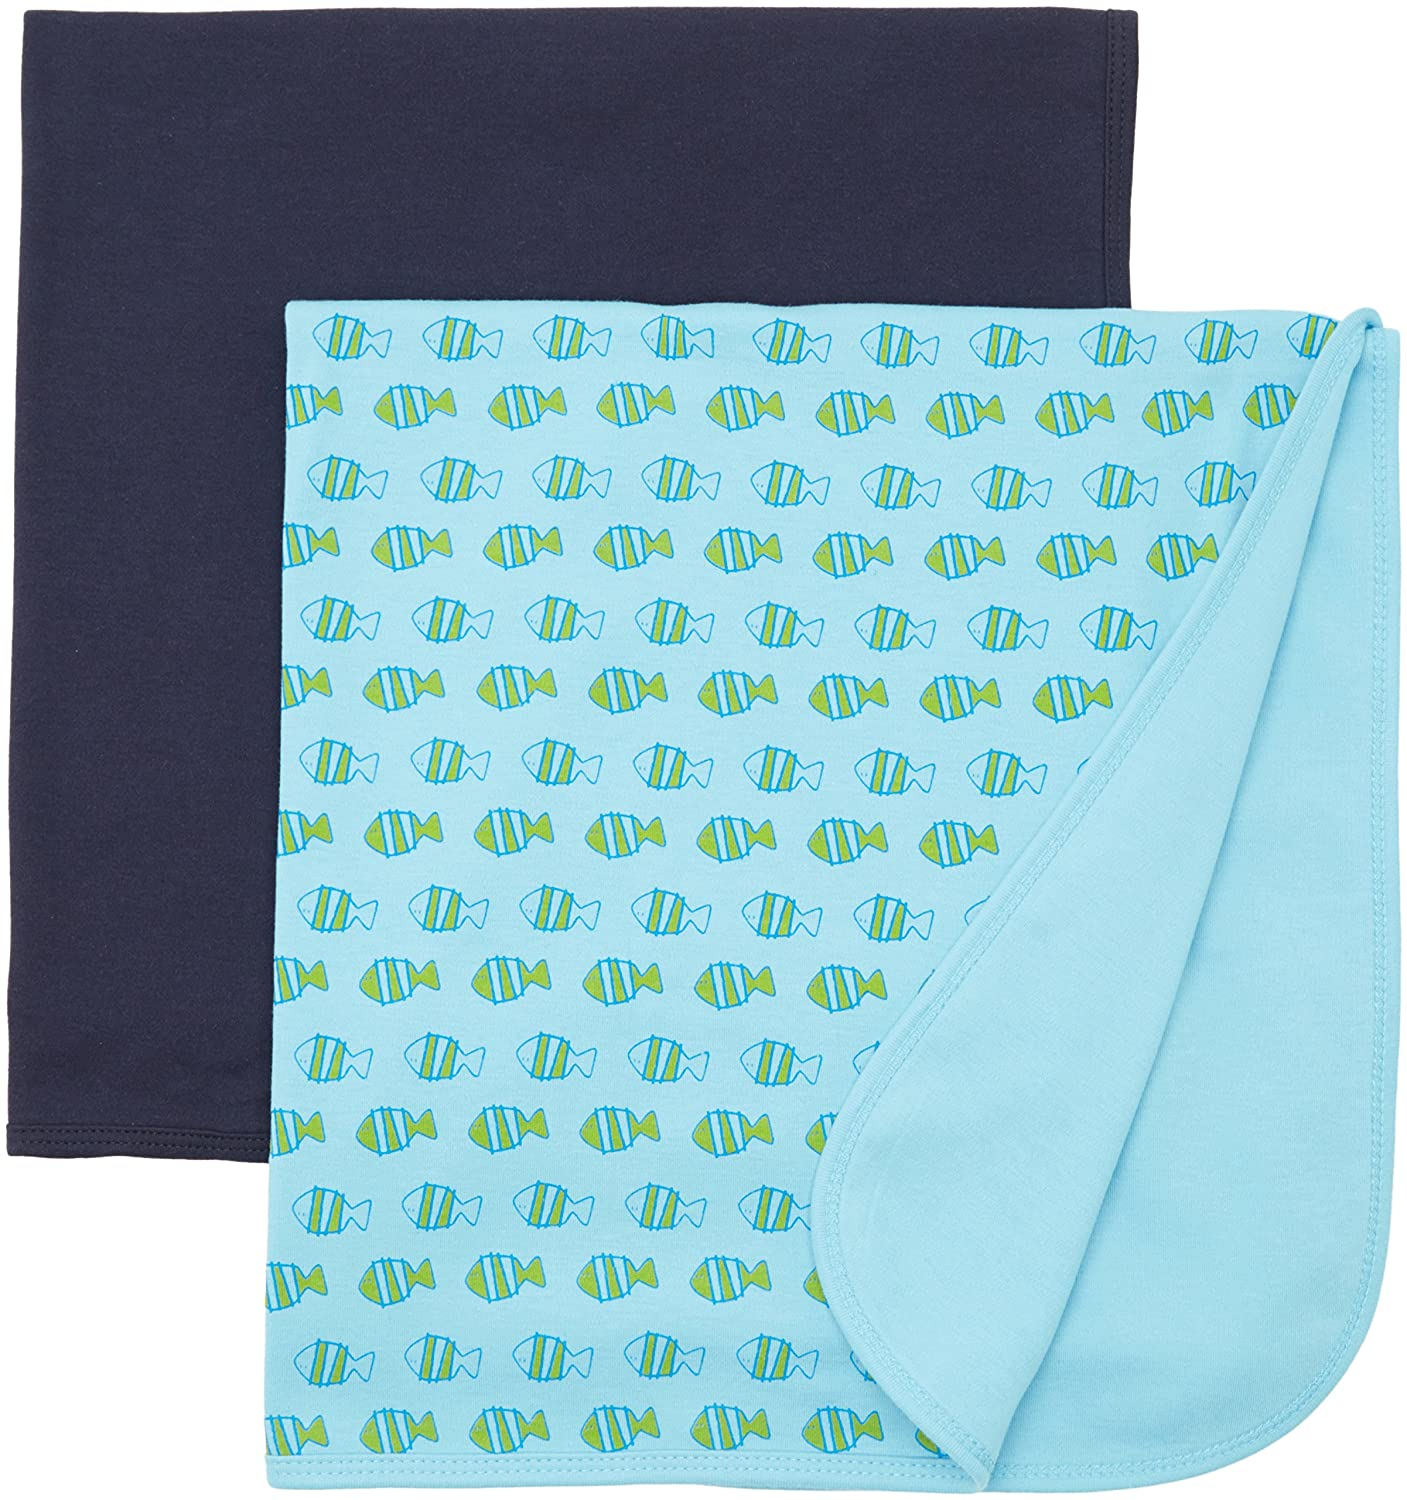 Care Unisex Baby Baby1 Scarf Care Baby Boys Scarf 2-pack Blue (Dark Navy) 550055